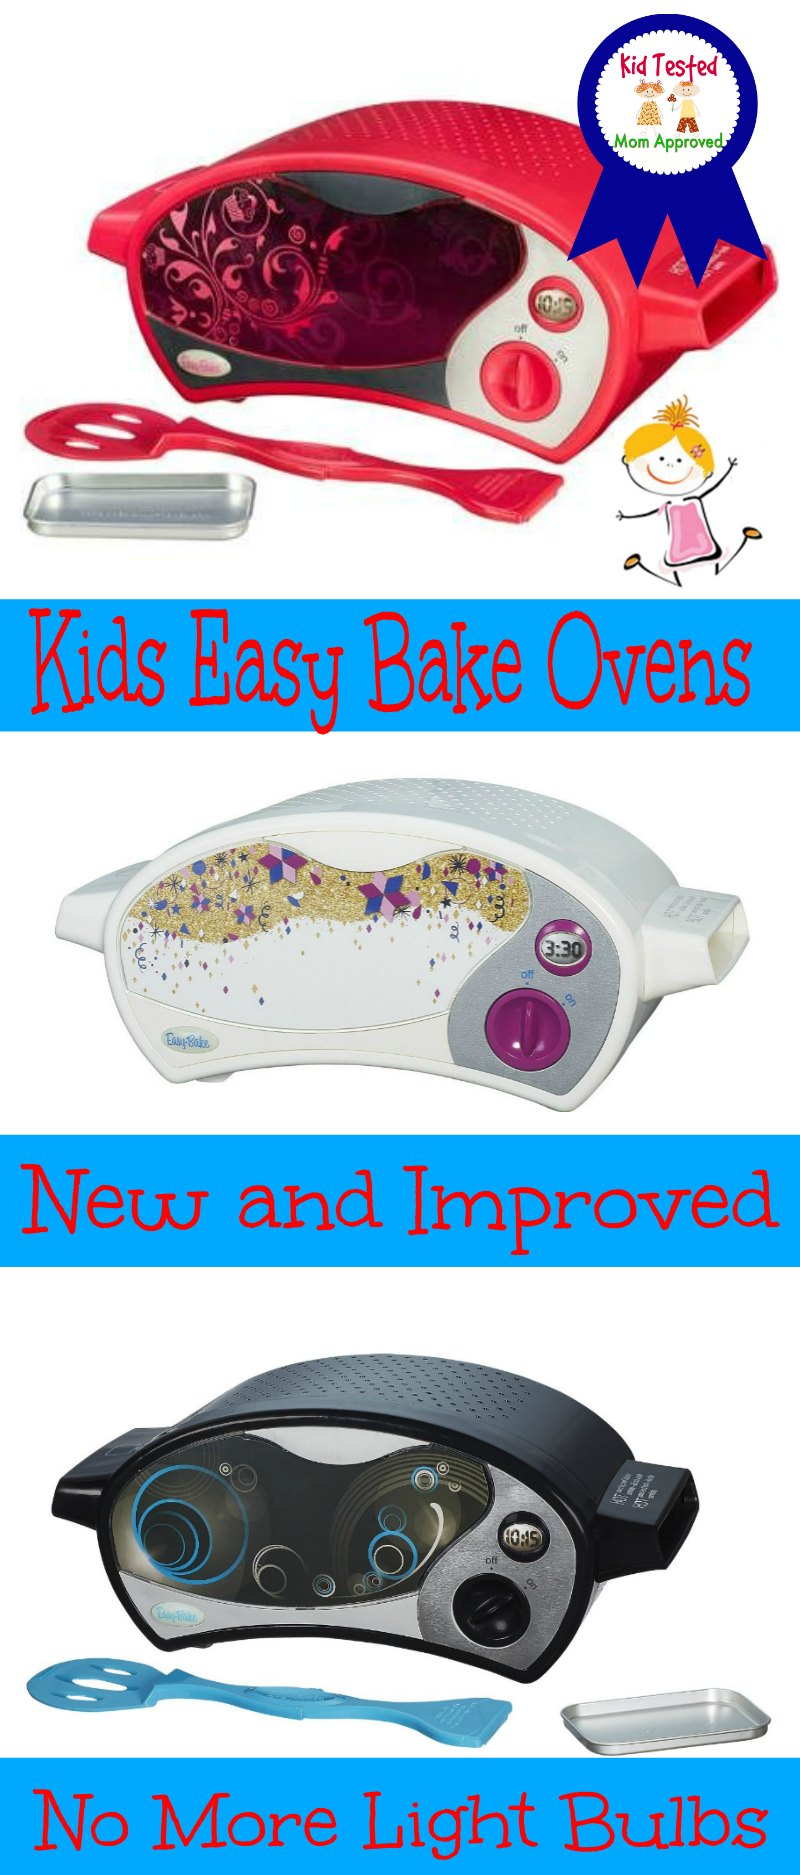 Kids Easy Bake Ovens and Accessories | New & Improved – Top Toys For